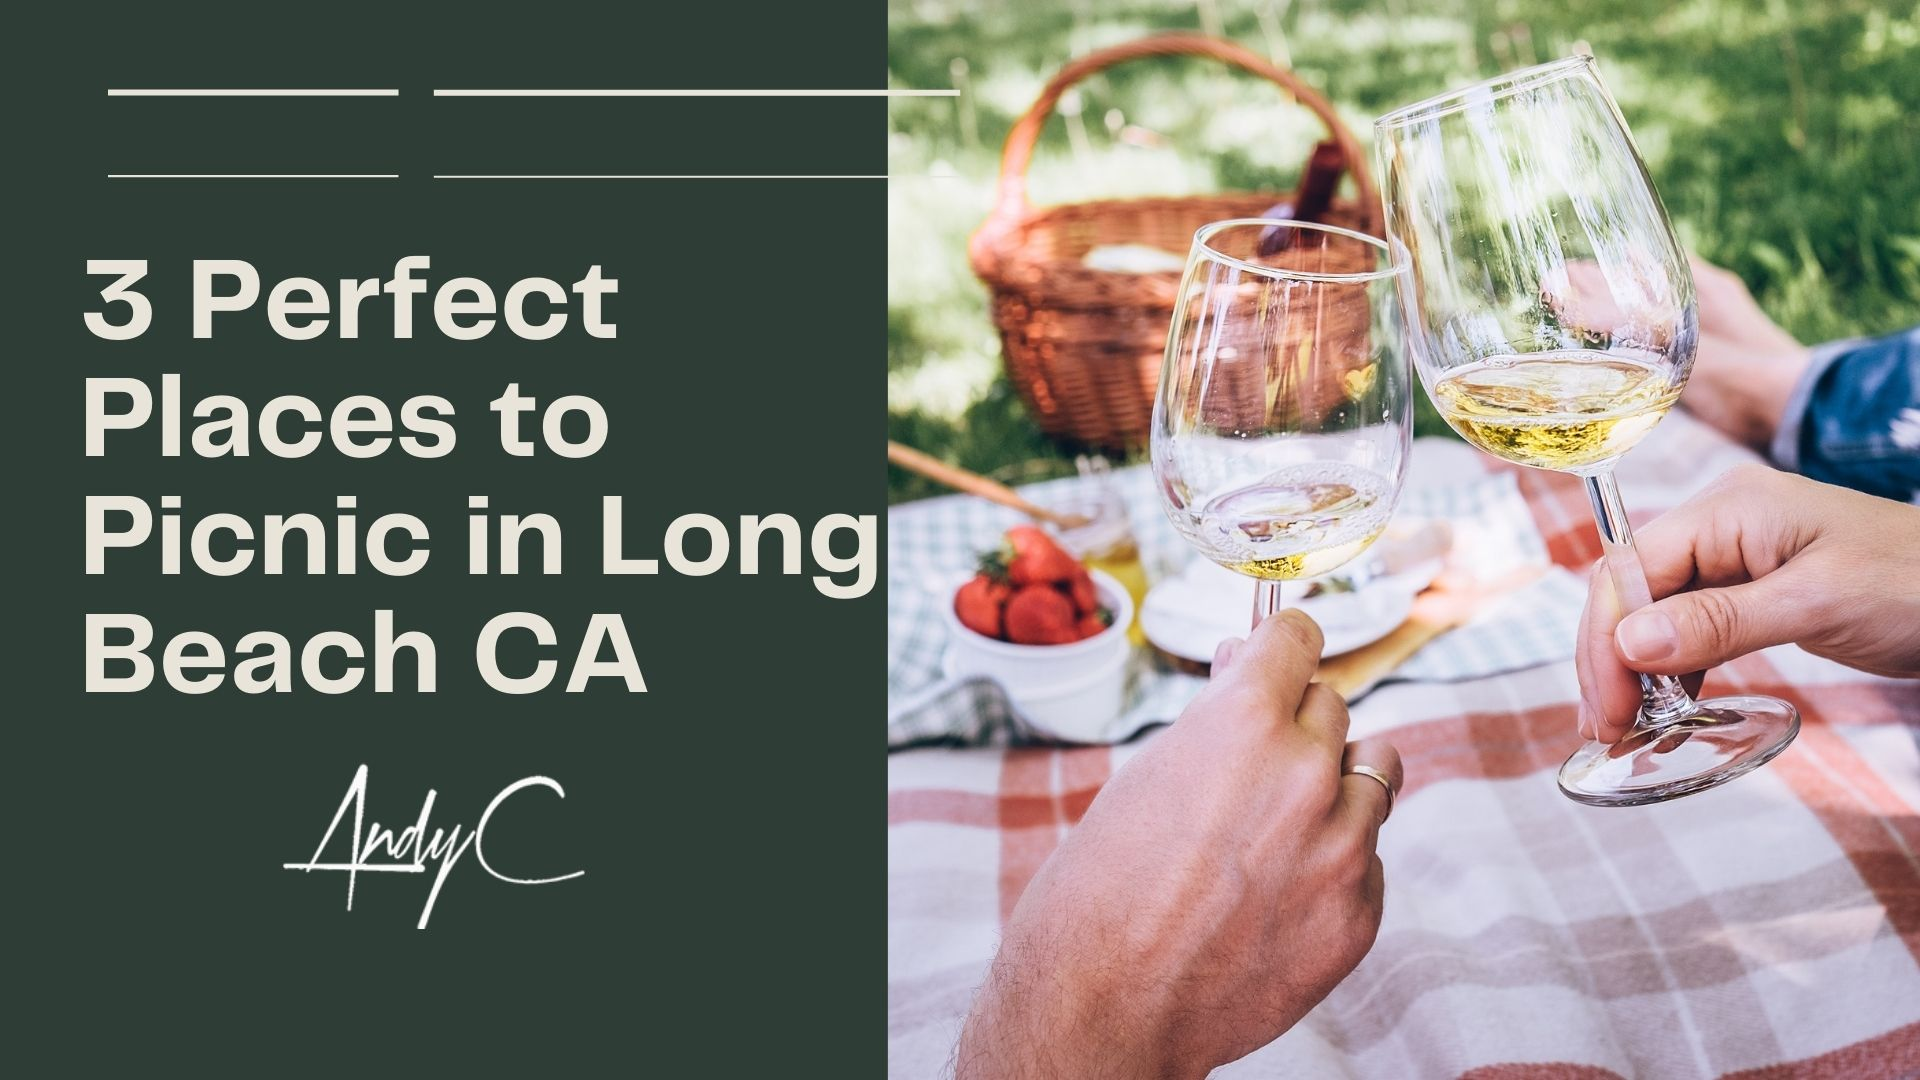 3 Perfect Places to Picnic in Long Beach CA